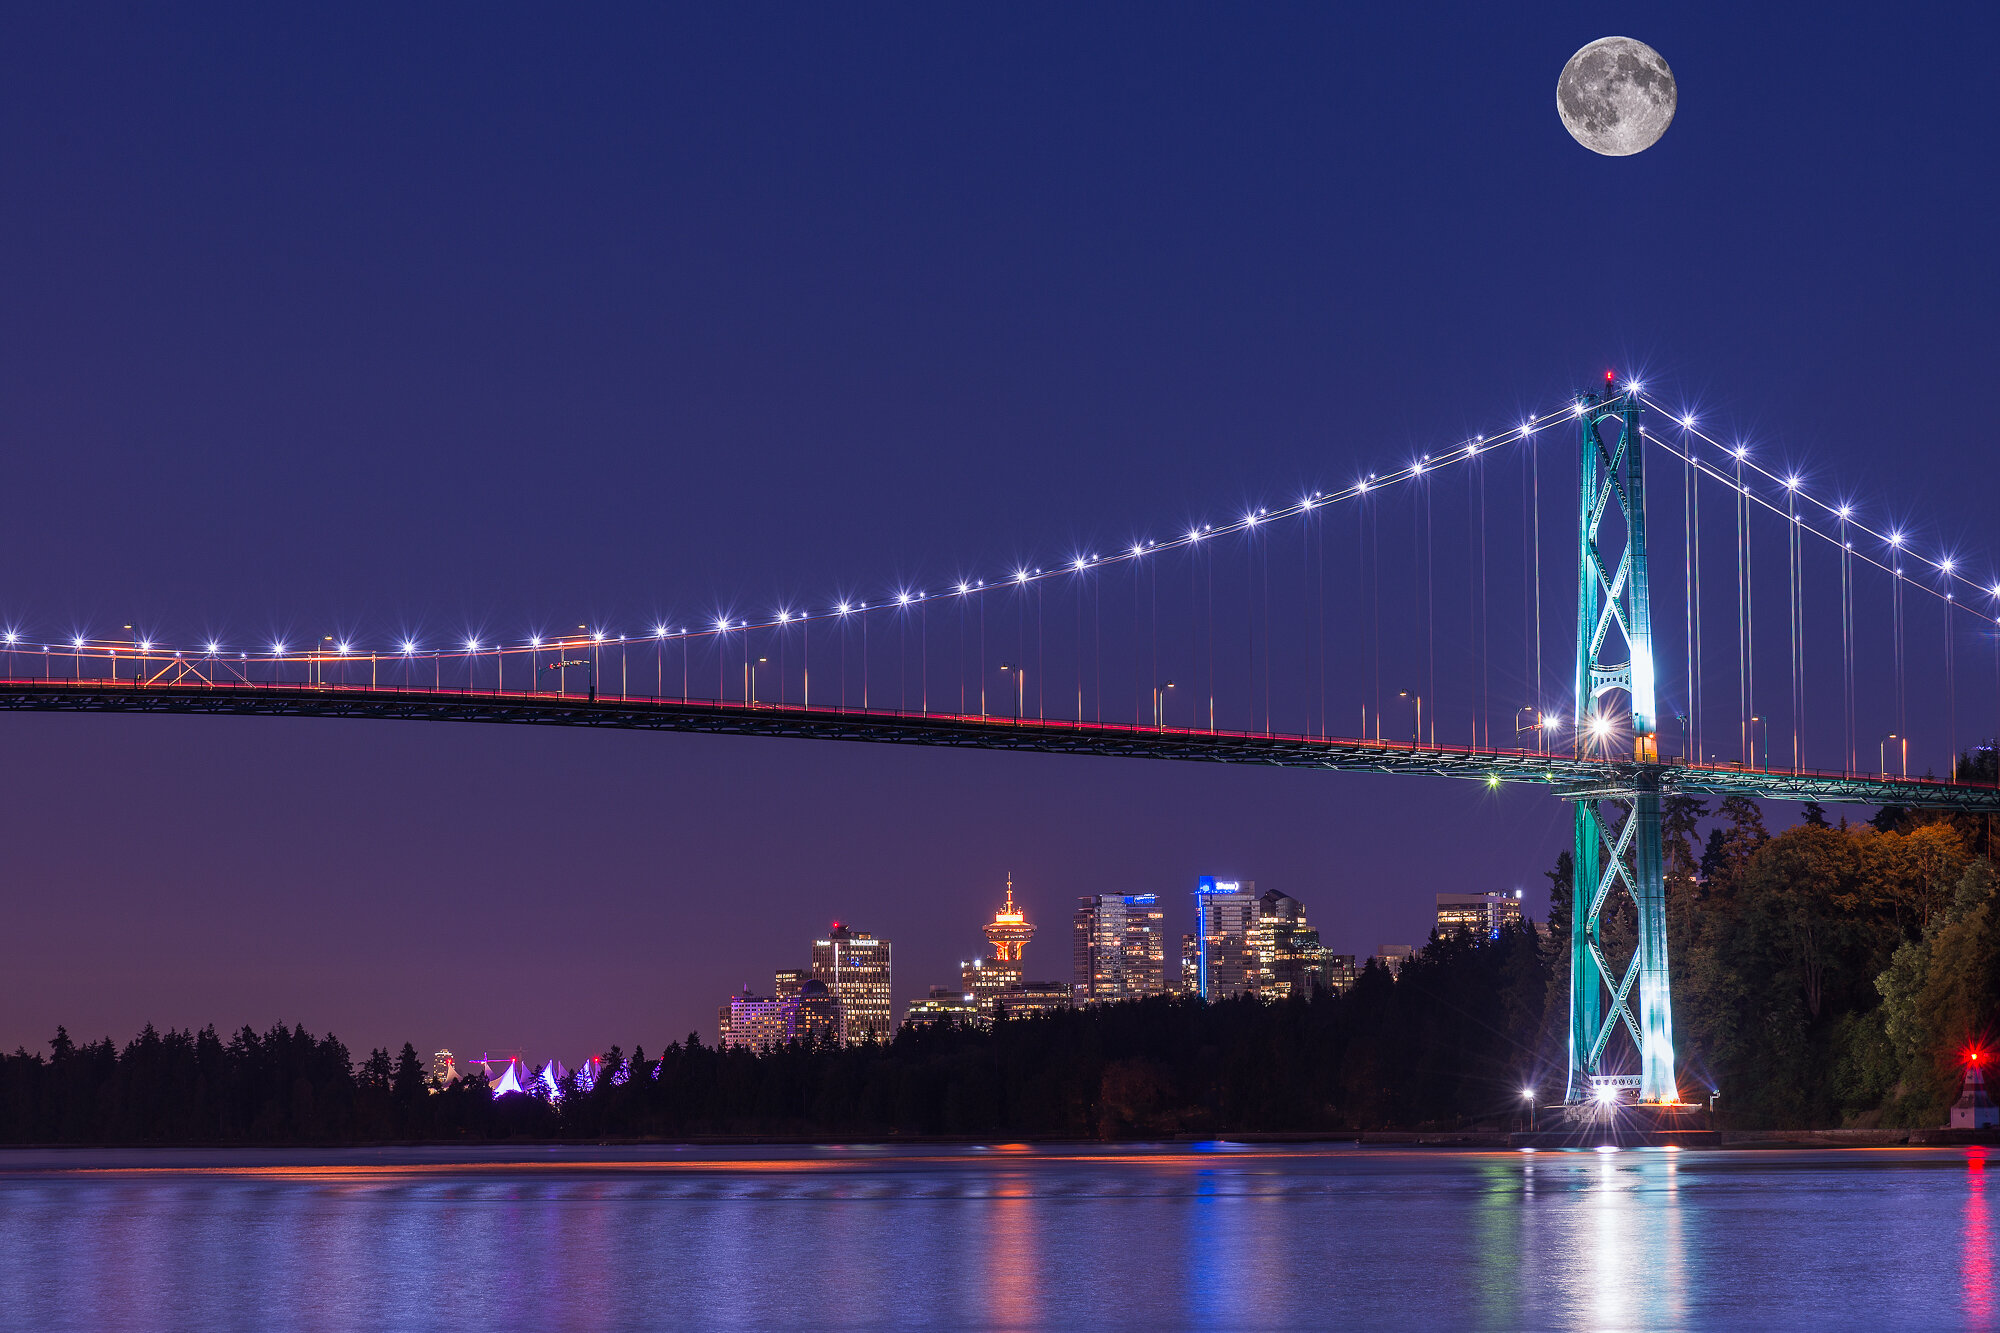 Vancouver City Photography: 'Once in a Blue Moon'